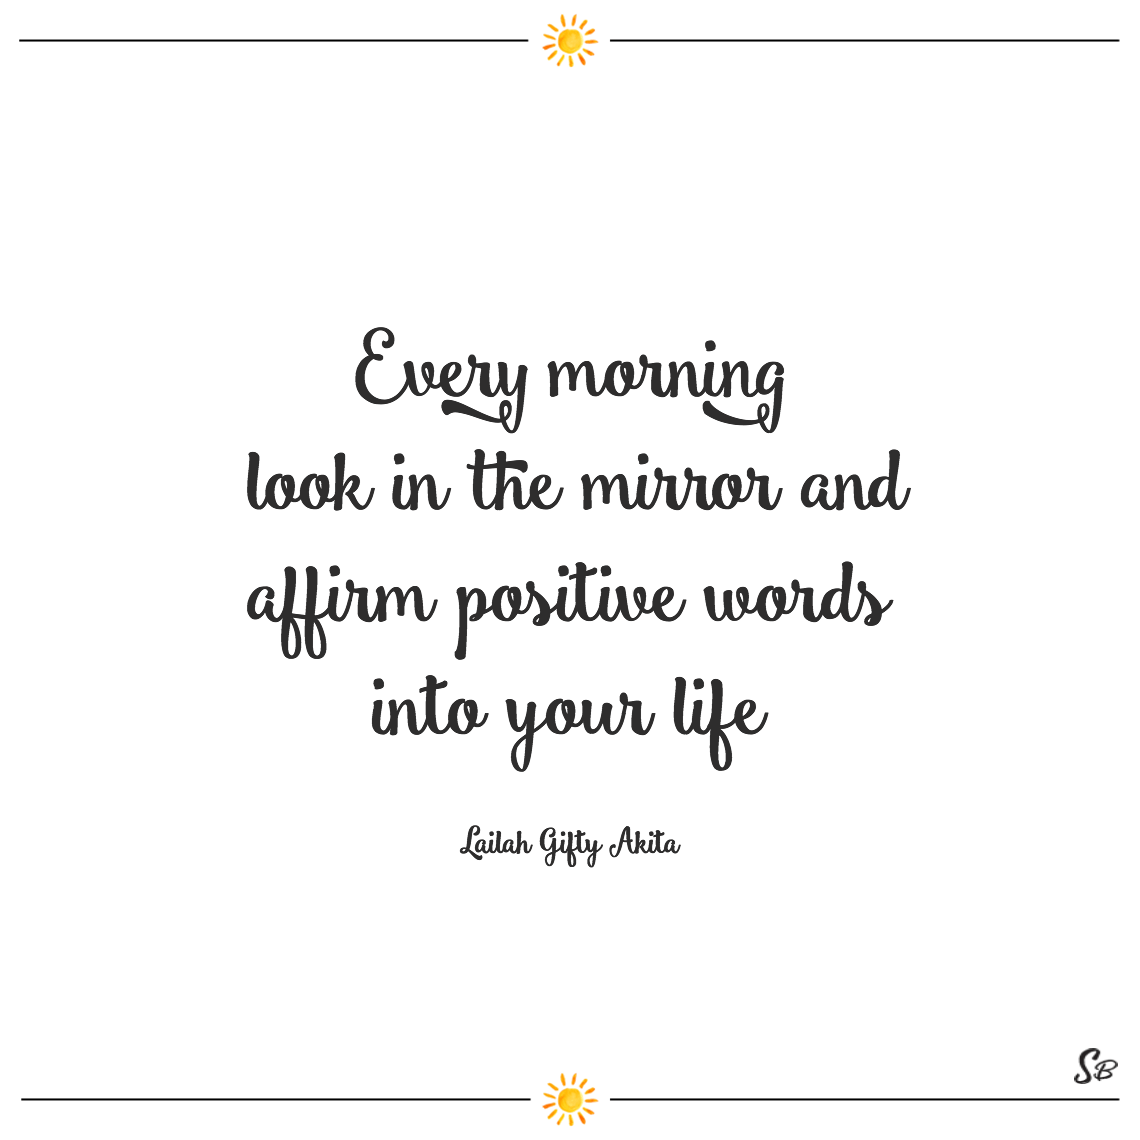 Quotes Morning 40 Awesome Good Morning Quotes To Jump Start Your Day  Spirit Button